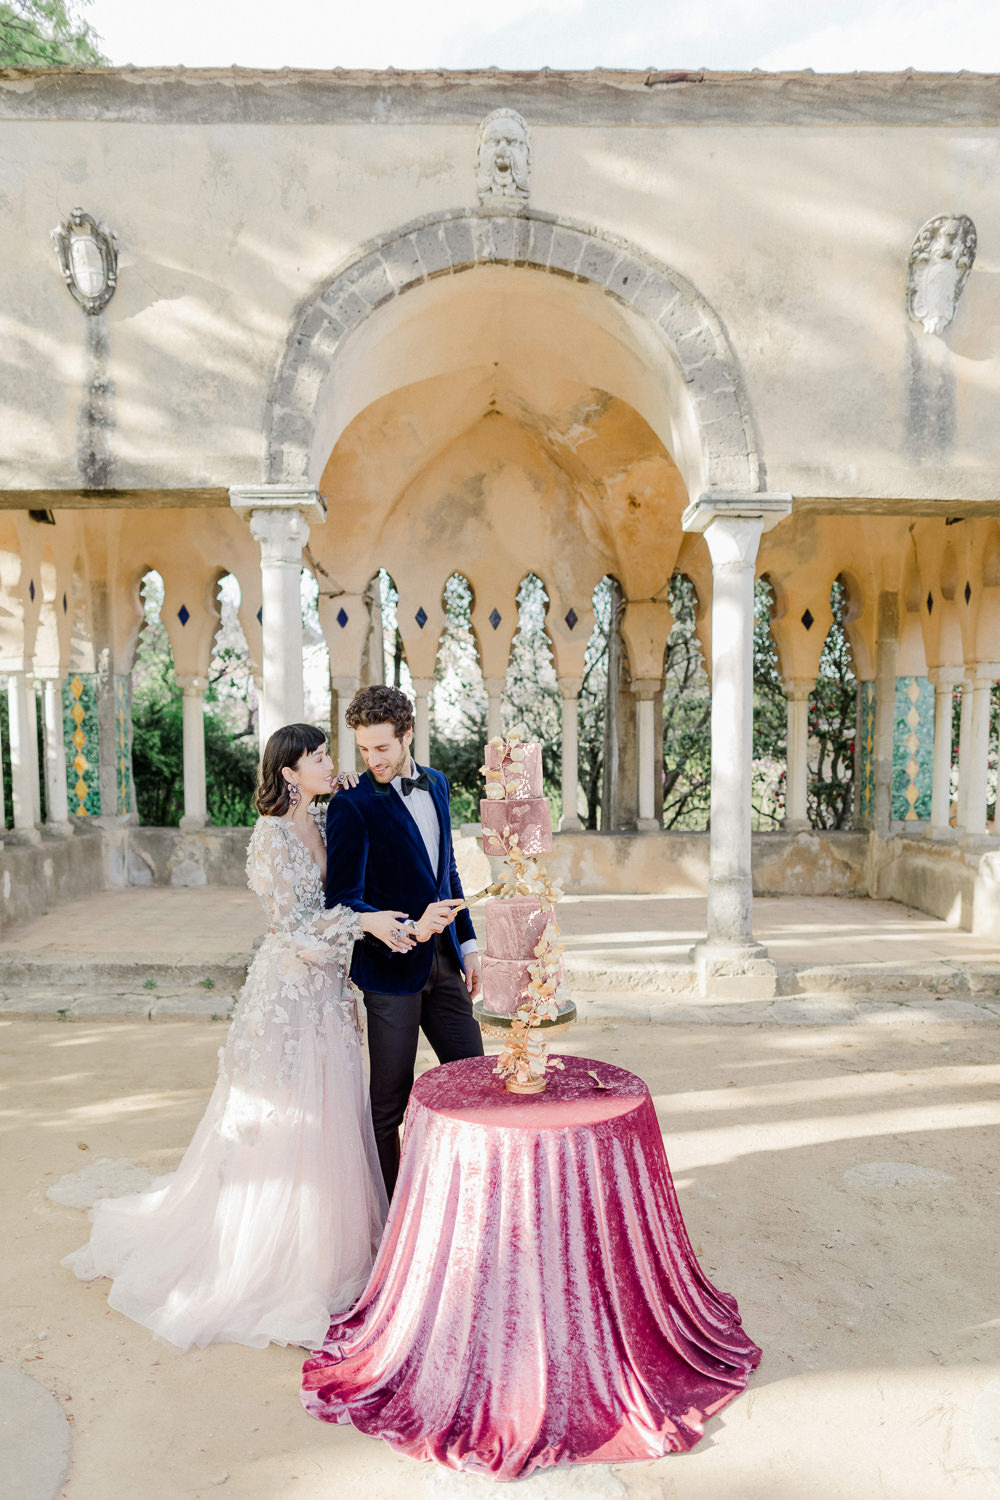 Villa_Cimbrone_Amalfi_Wedding_0078